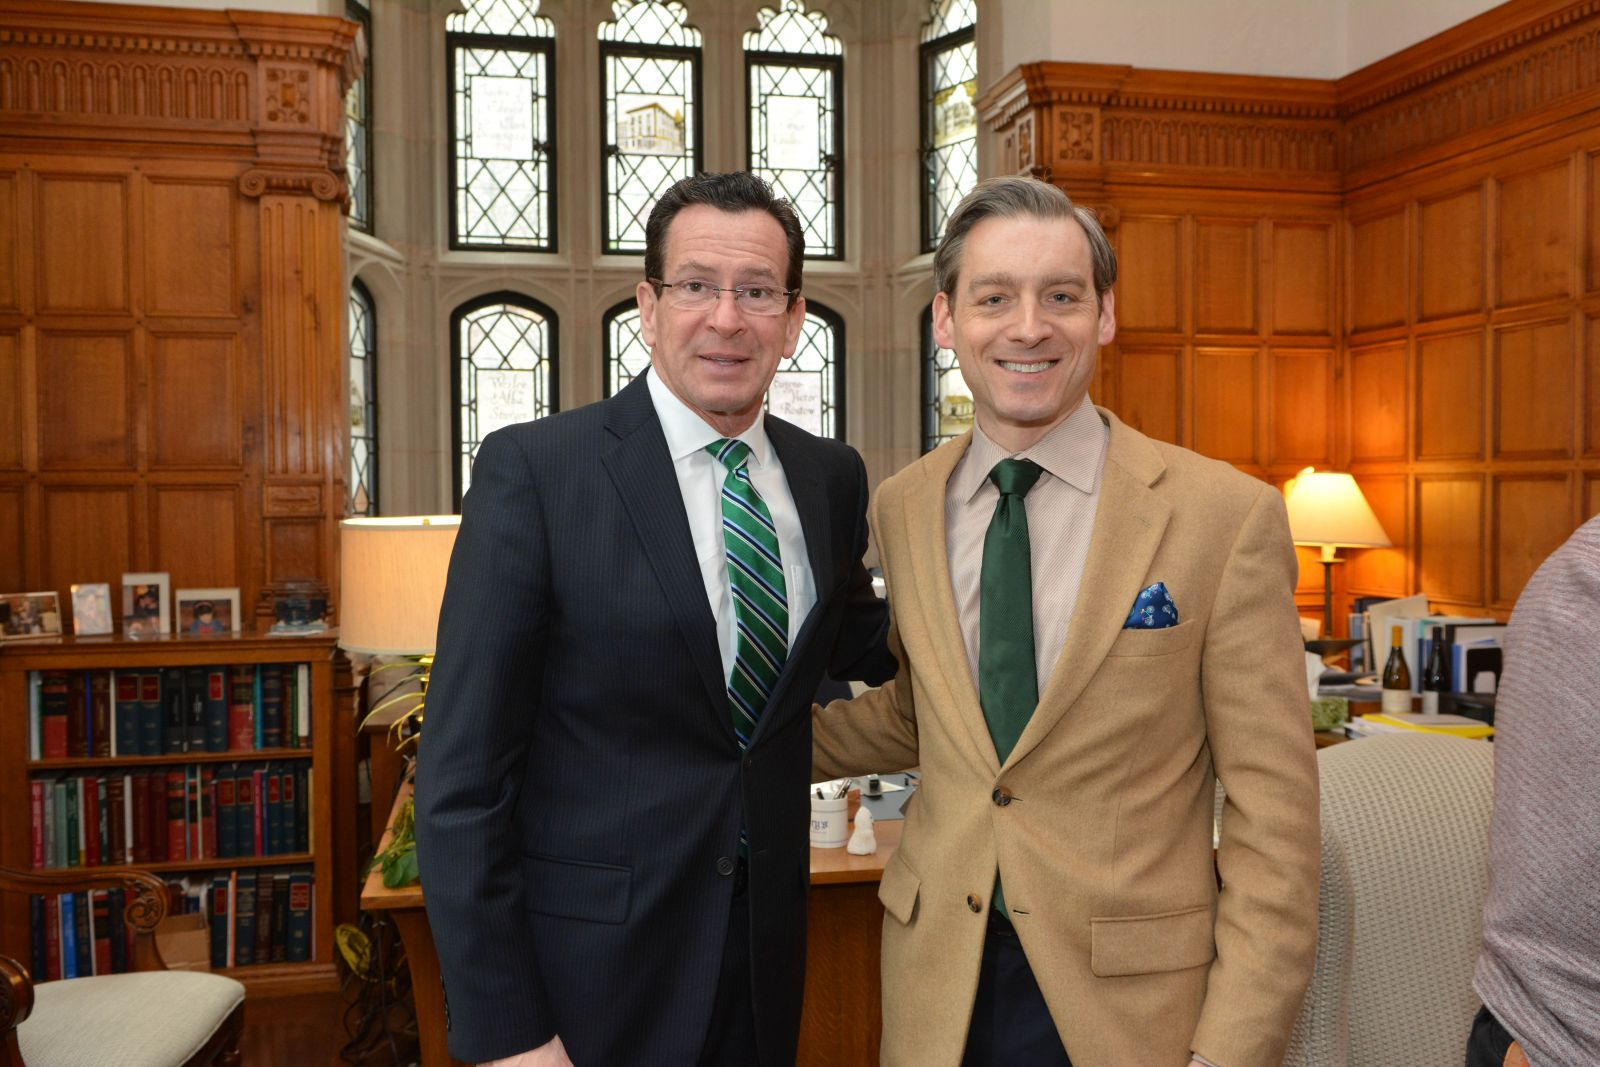 Governor Malloy Speaks At Yale Law School Institution